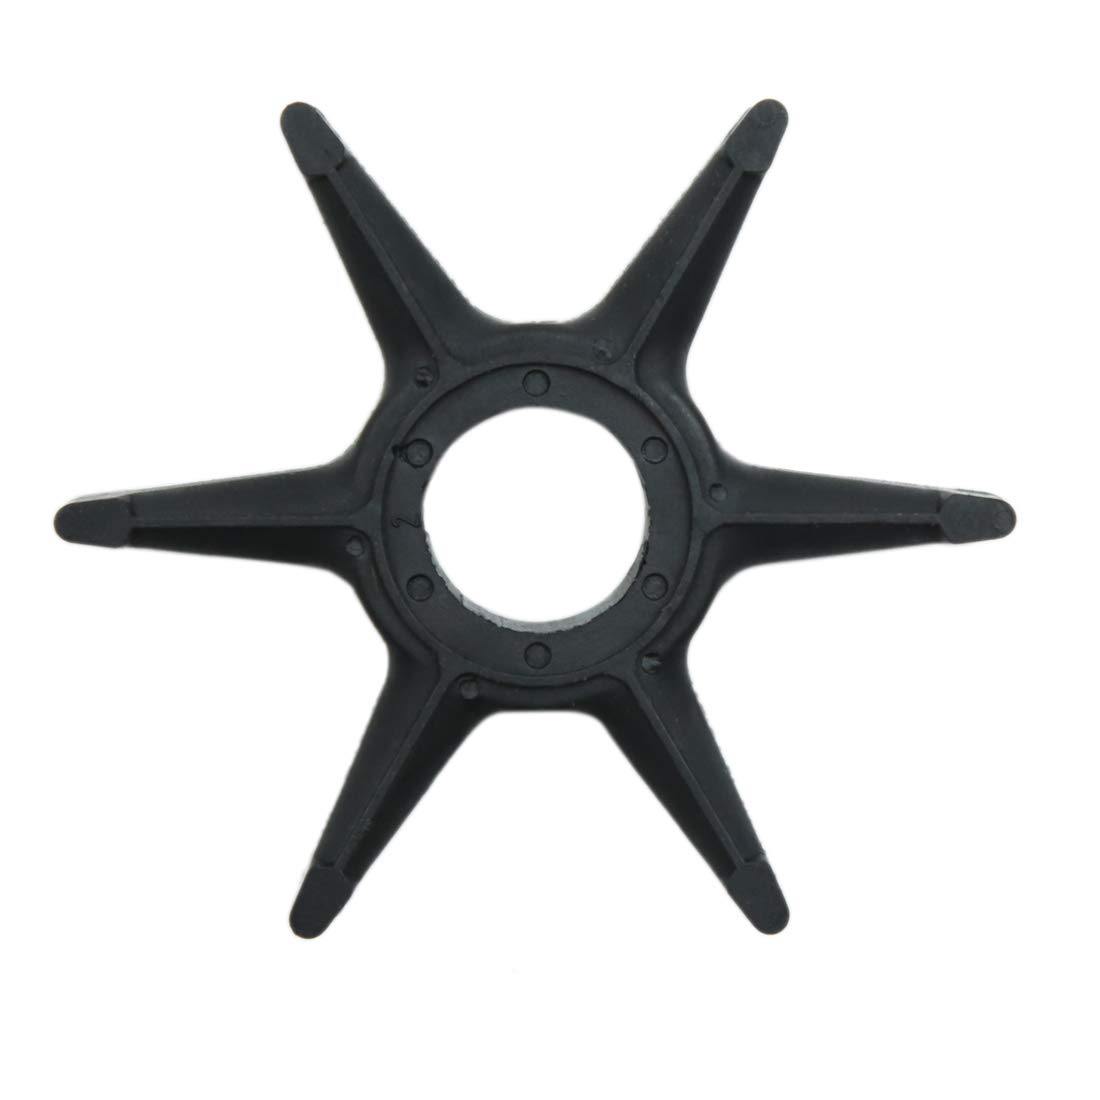 uxcell/® Boat Outboard Water Pump Impeller Replacement for Yamaha 25 30hp 689-44352-02-00